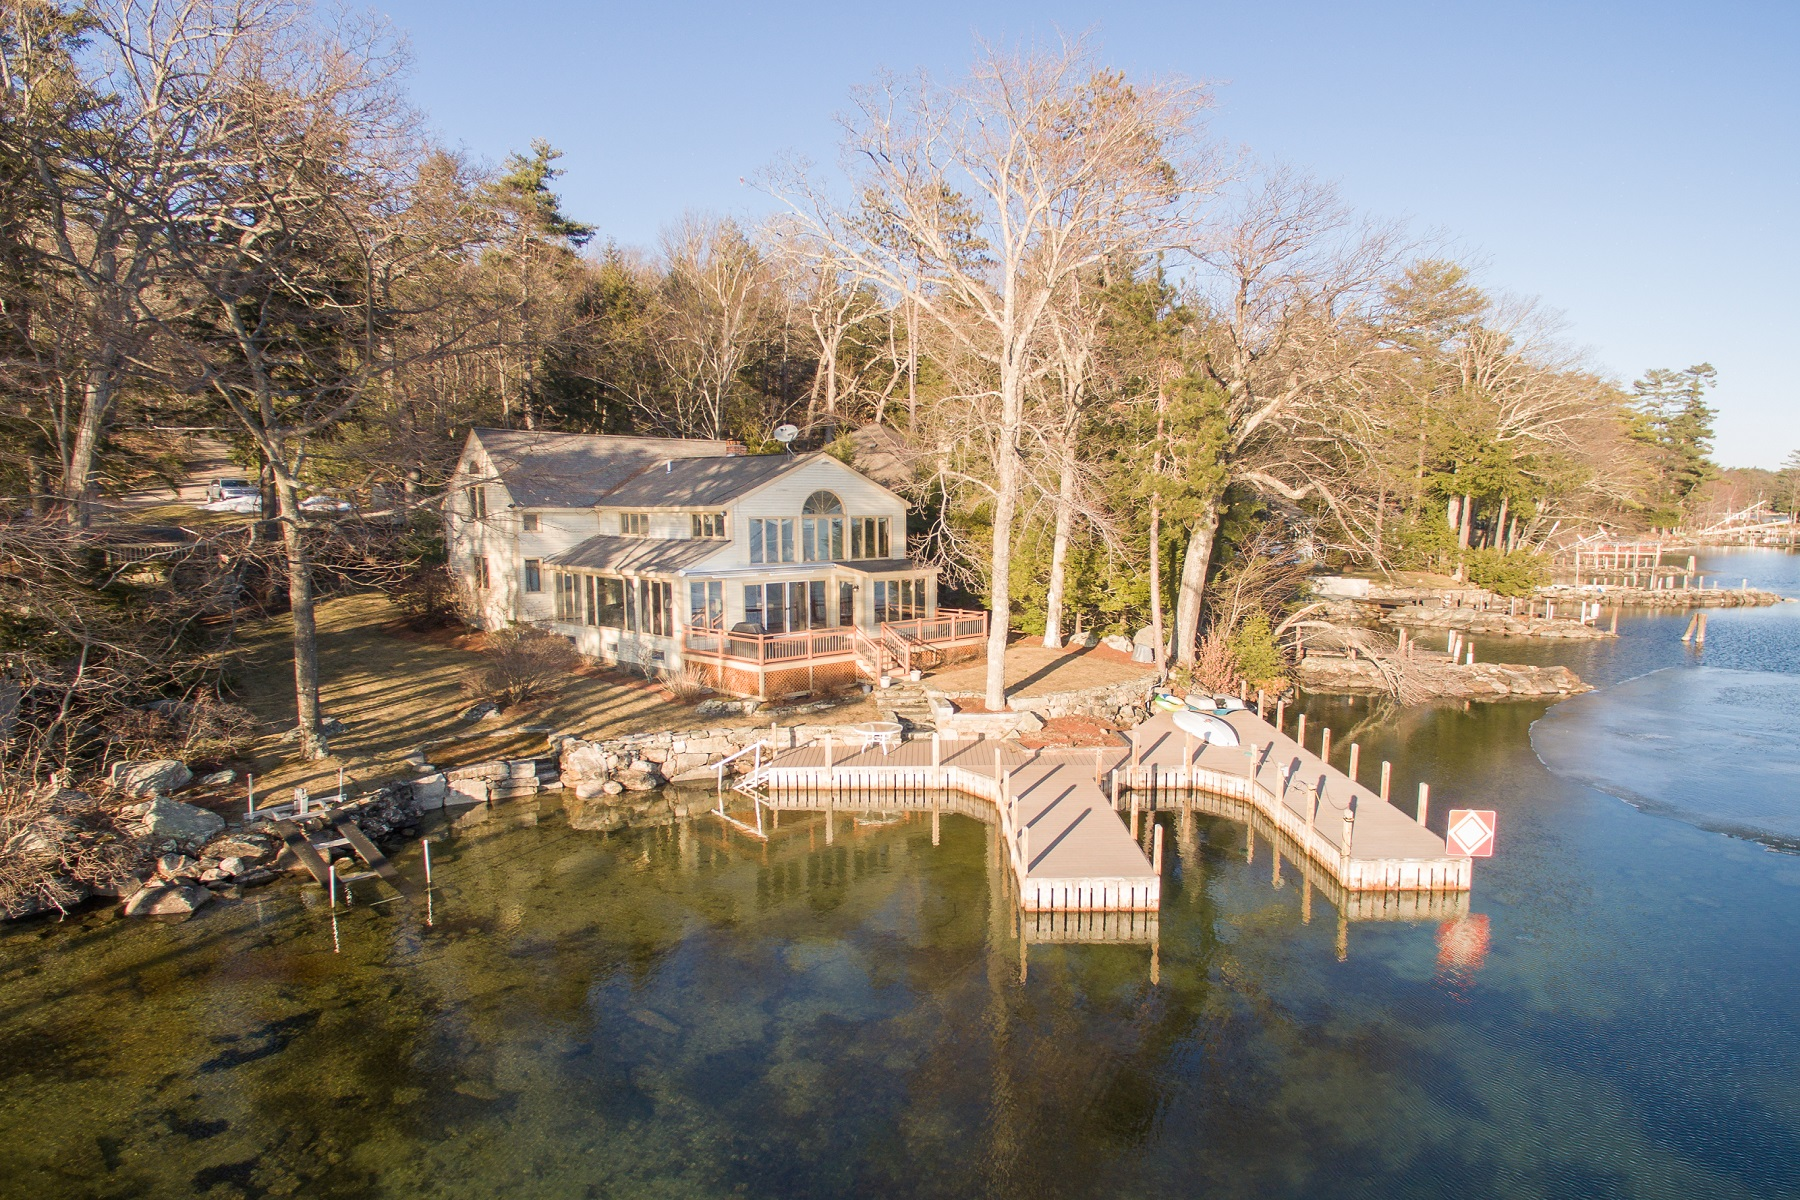 Single Family Homes for Sale at Spindle Point on Lake Winnipesaukee 75 Spindle Point Road Meredith, New Hampshire 03253 United States